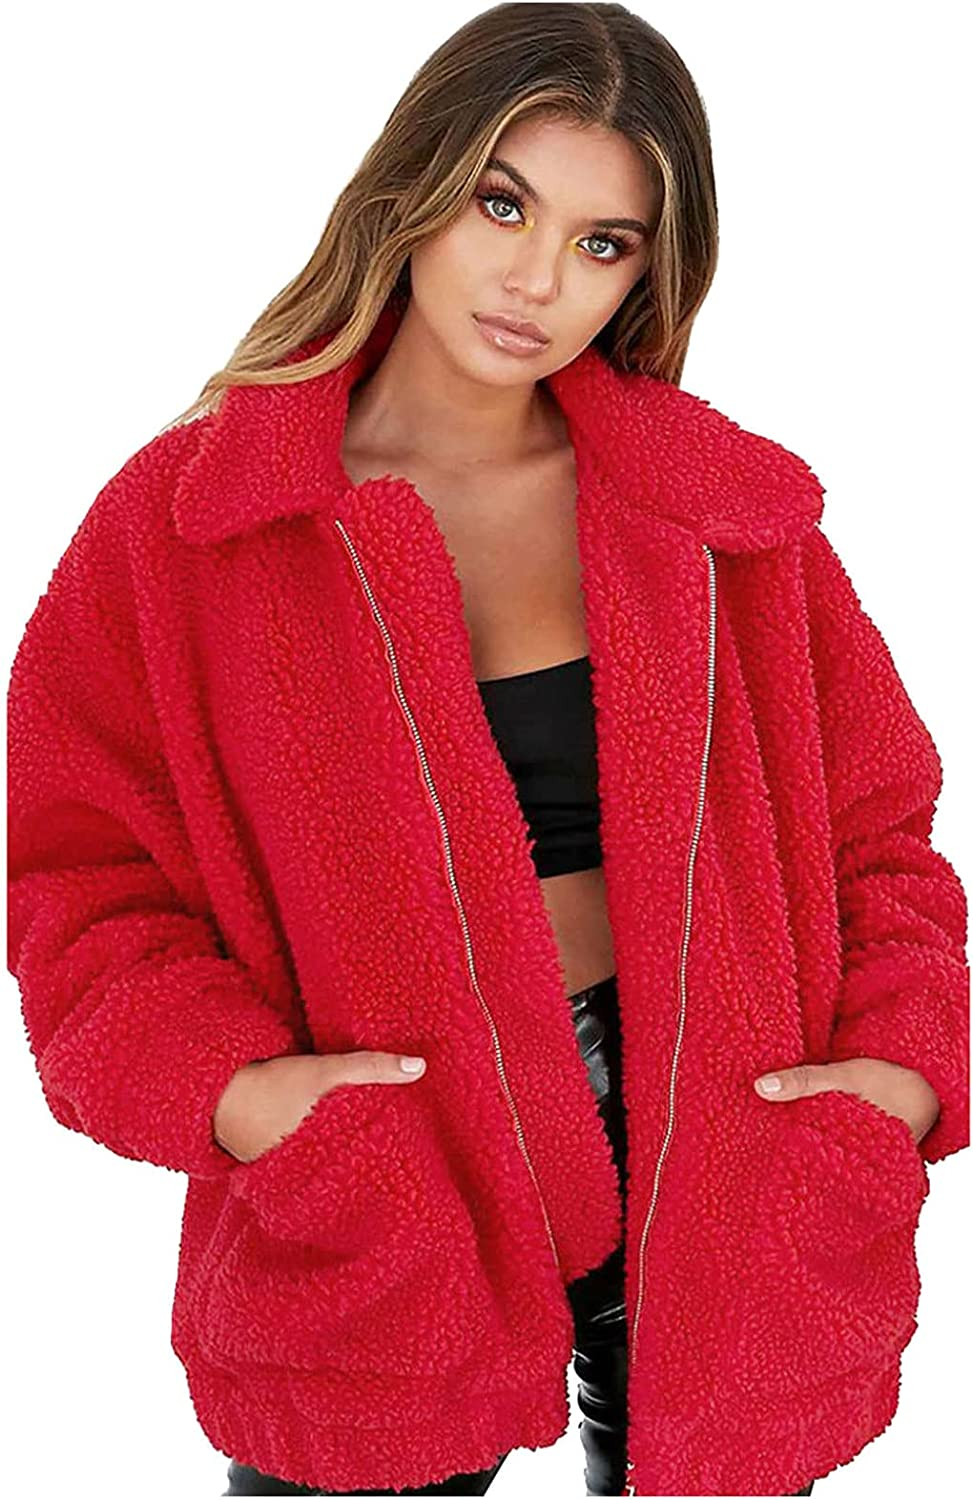 GERsome Ladies Warm Faux Furry Coat for Women's Winter Oversized Turn Down Collar Jacket Fashion Zipper Pockets Outerwear Red